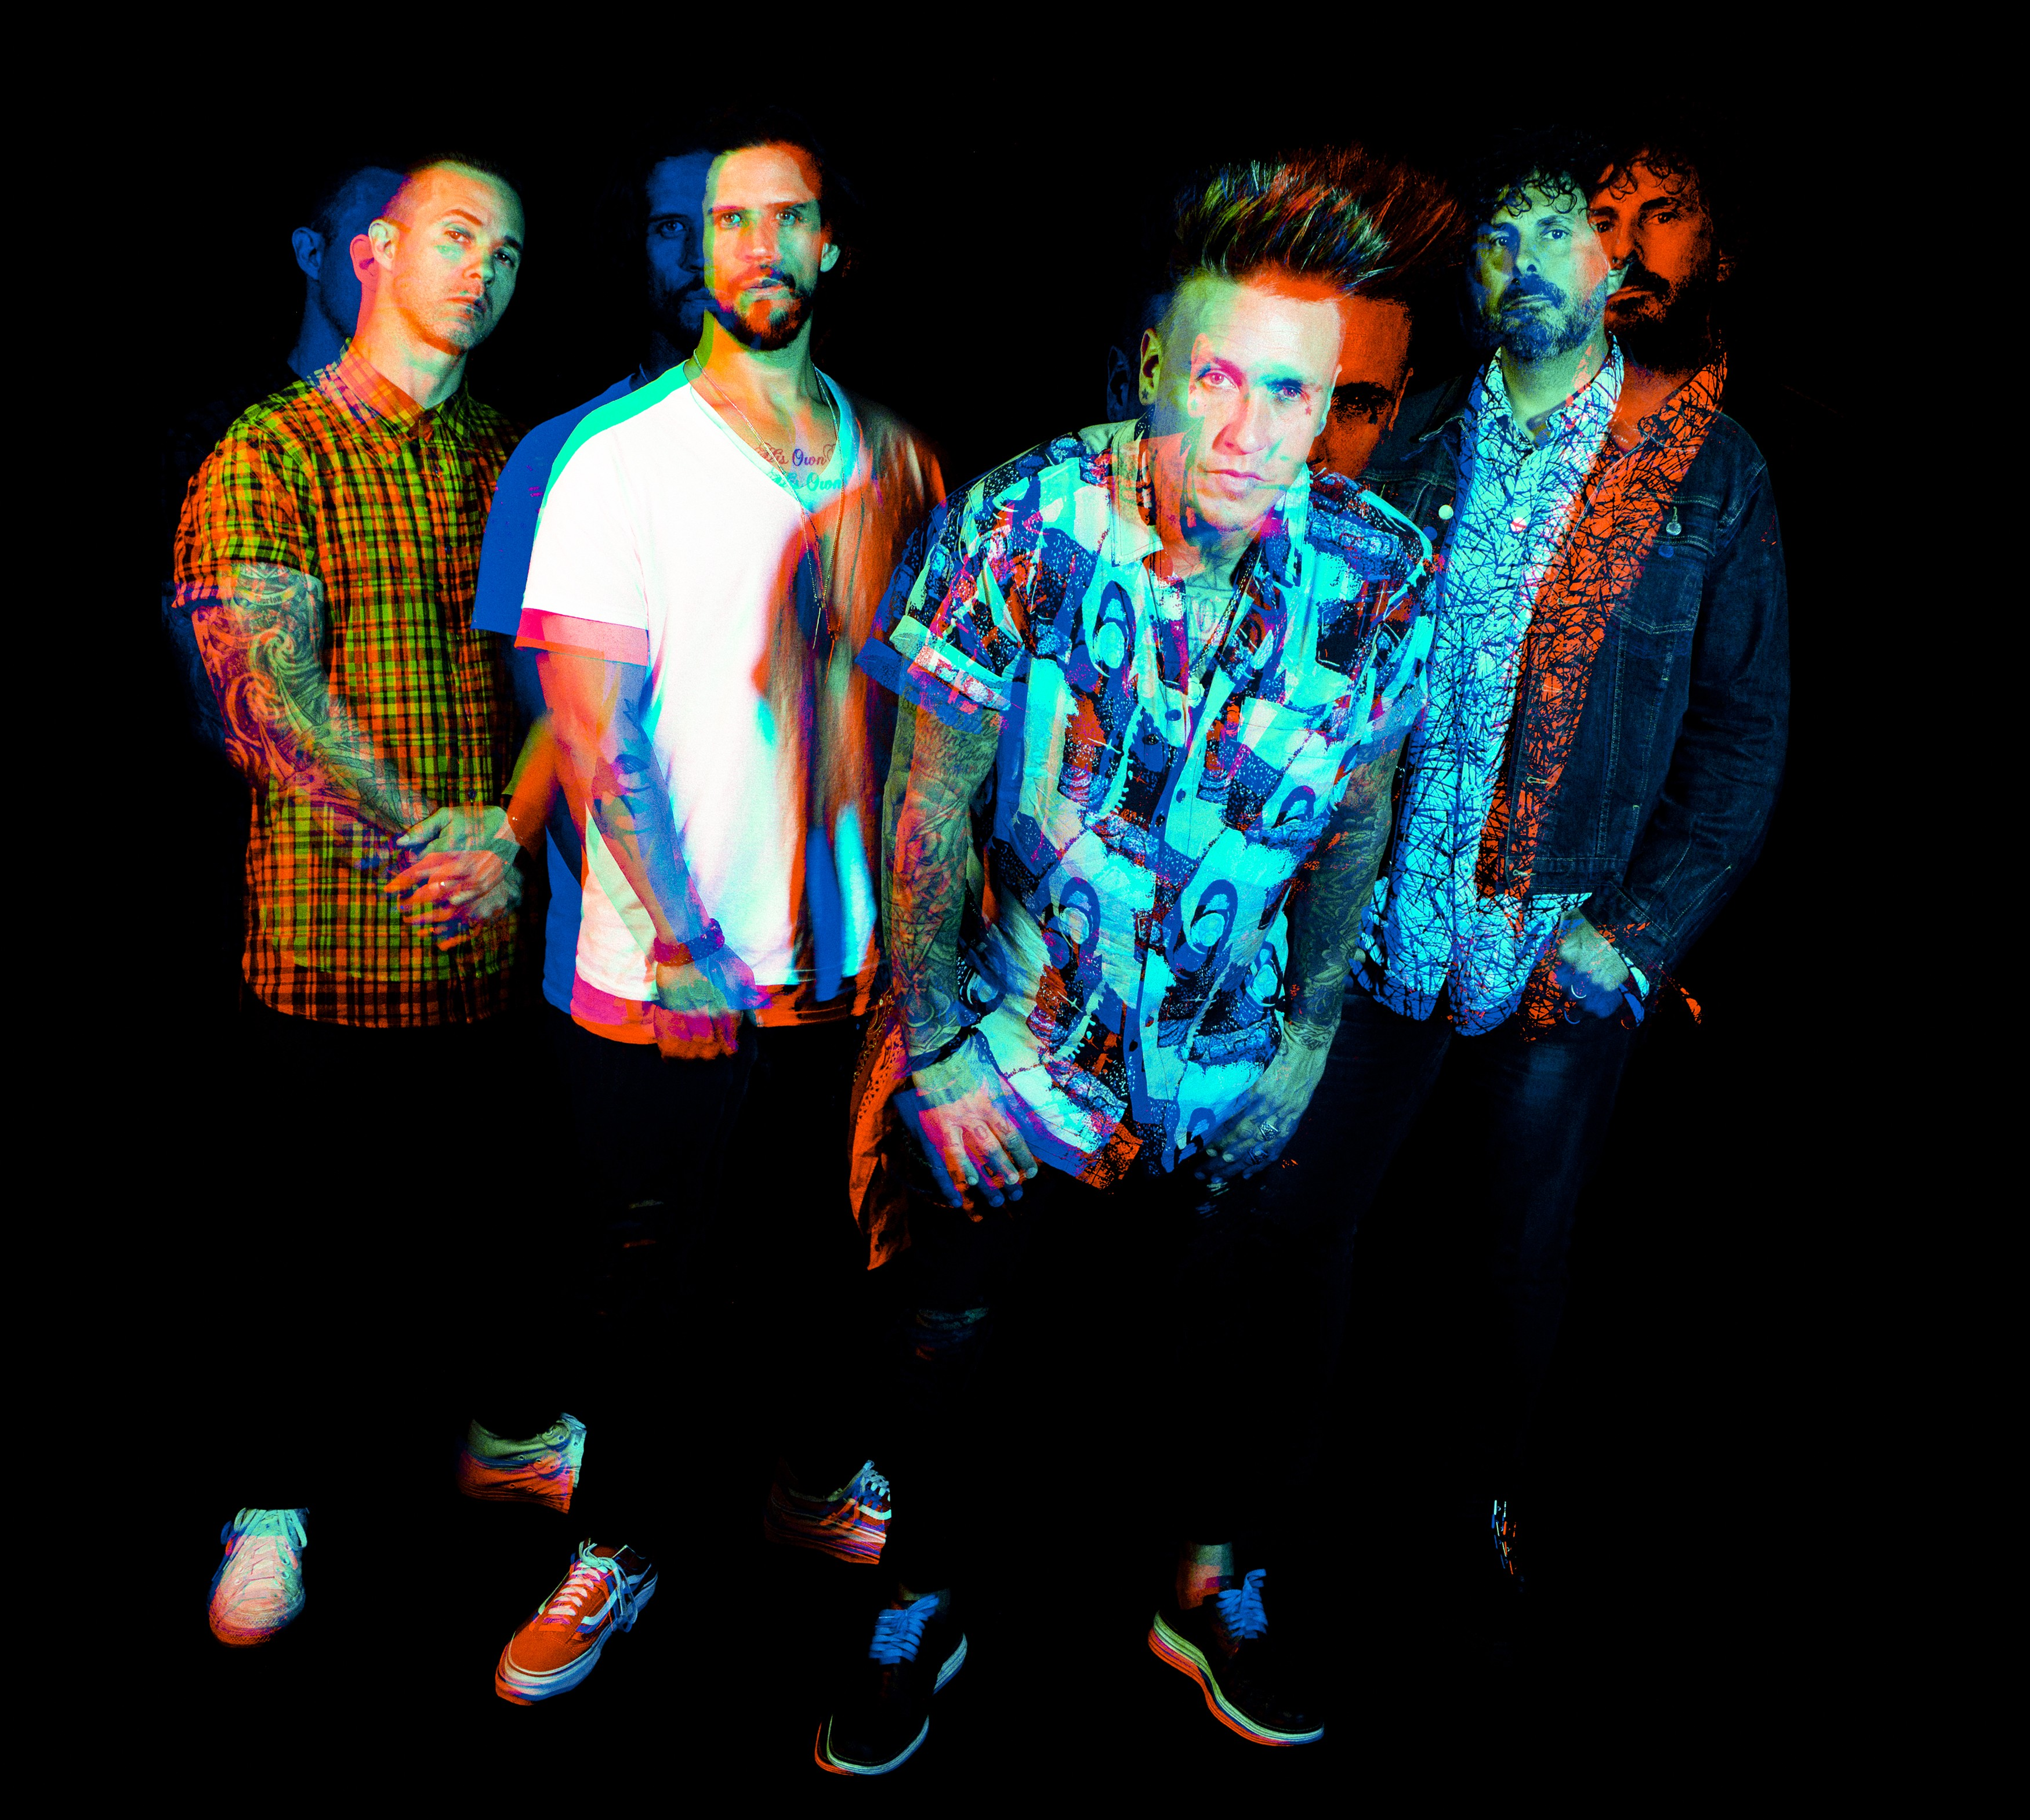 Cut our lives into pieces, Papa Roach is coming to metro Detroit